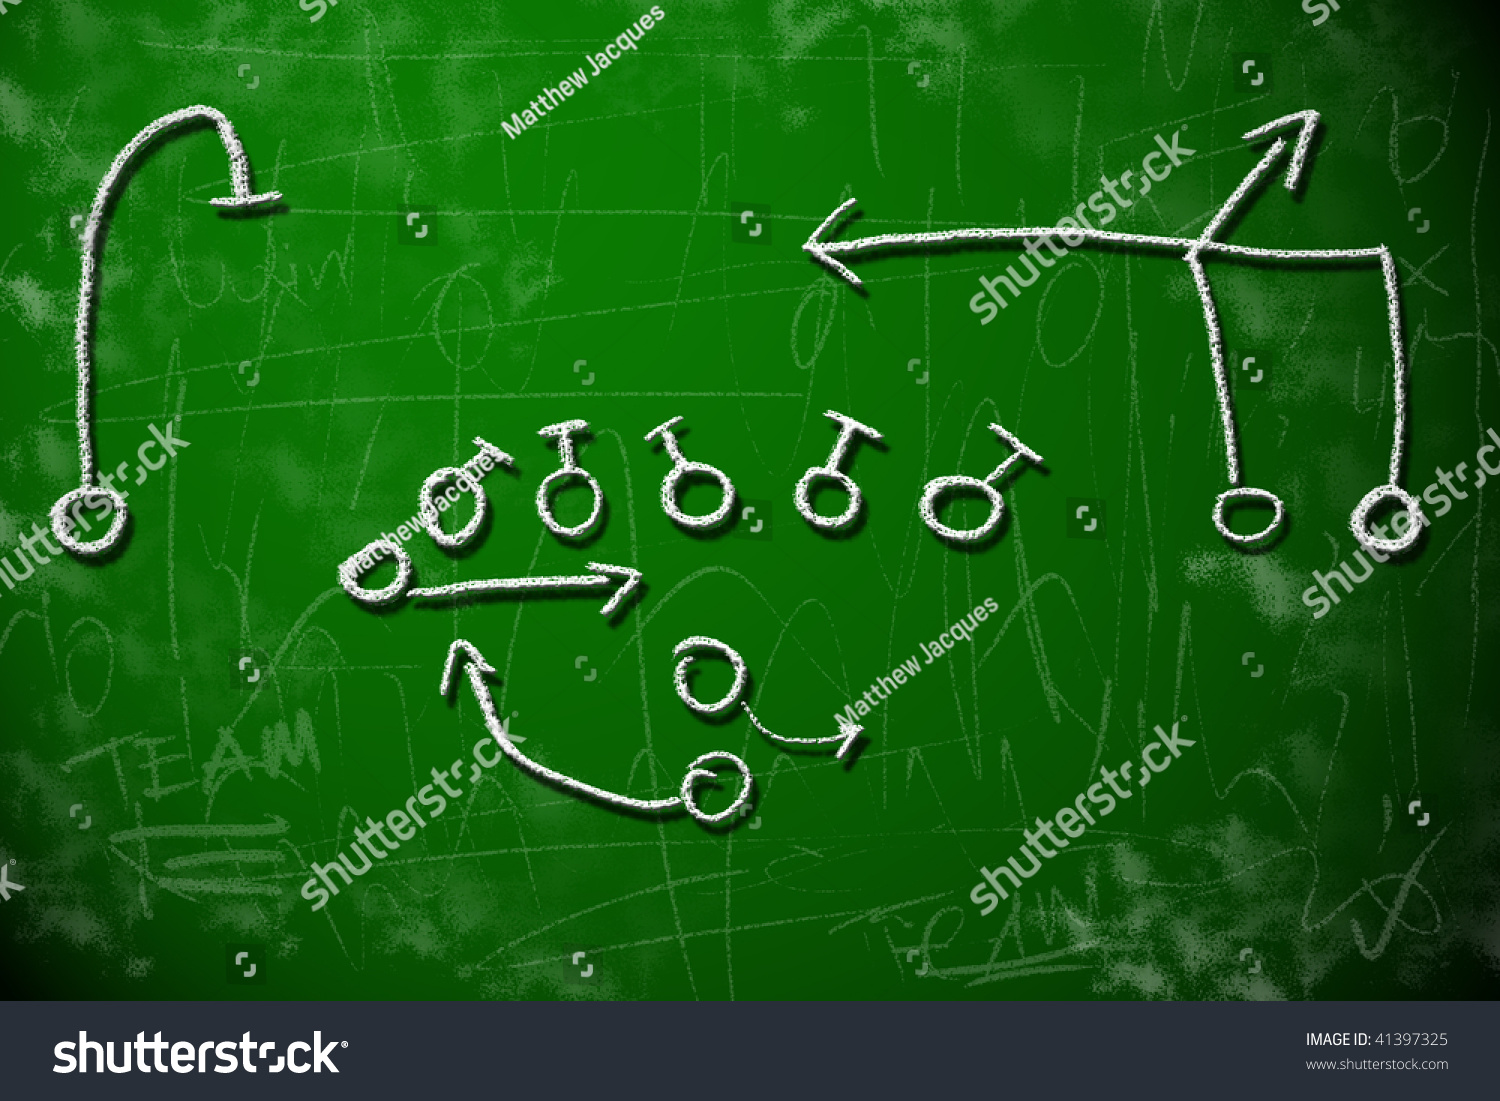 american football playbook diagram on chalkboard shows strategy    save to a lightbox